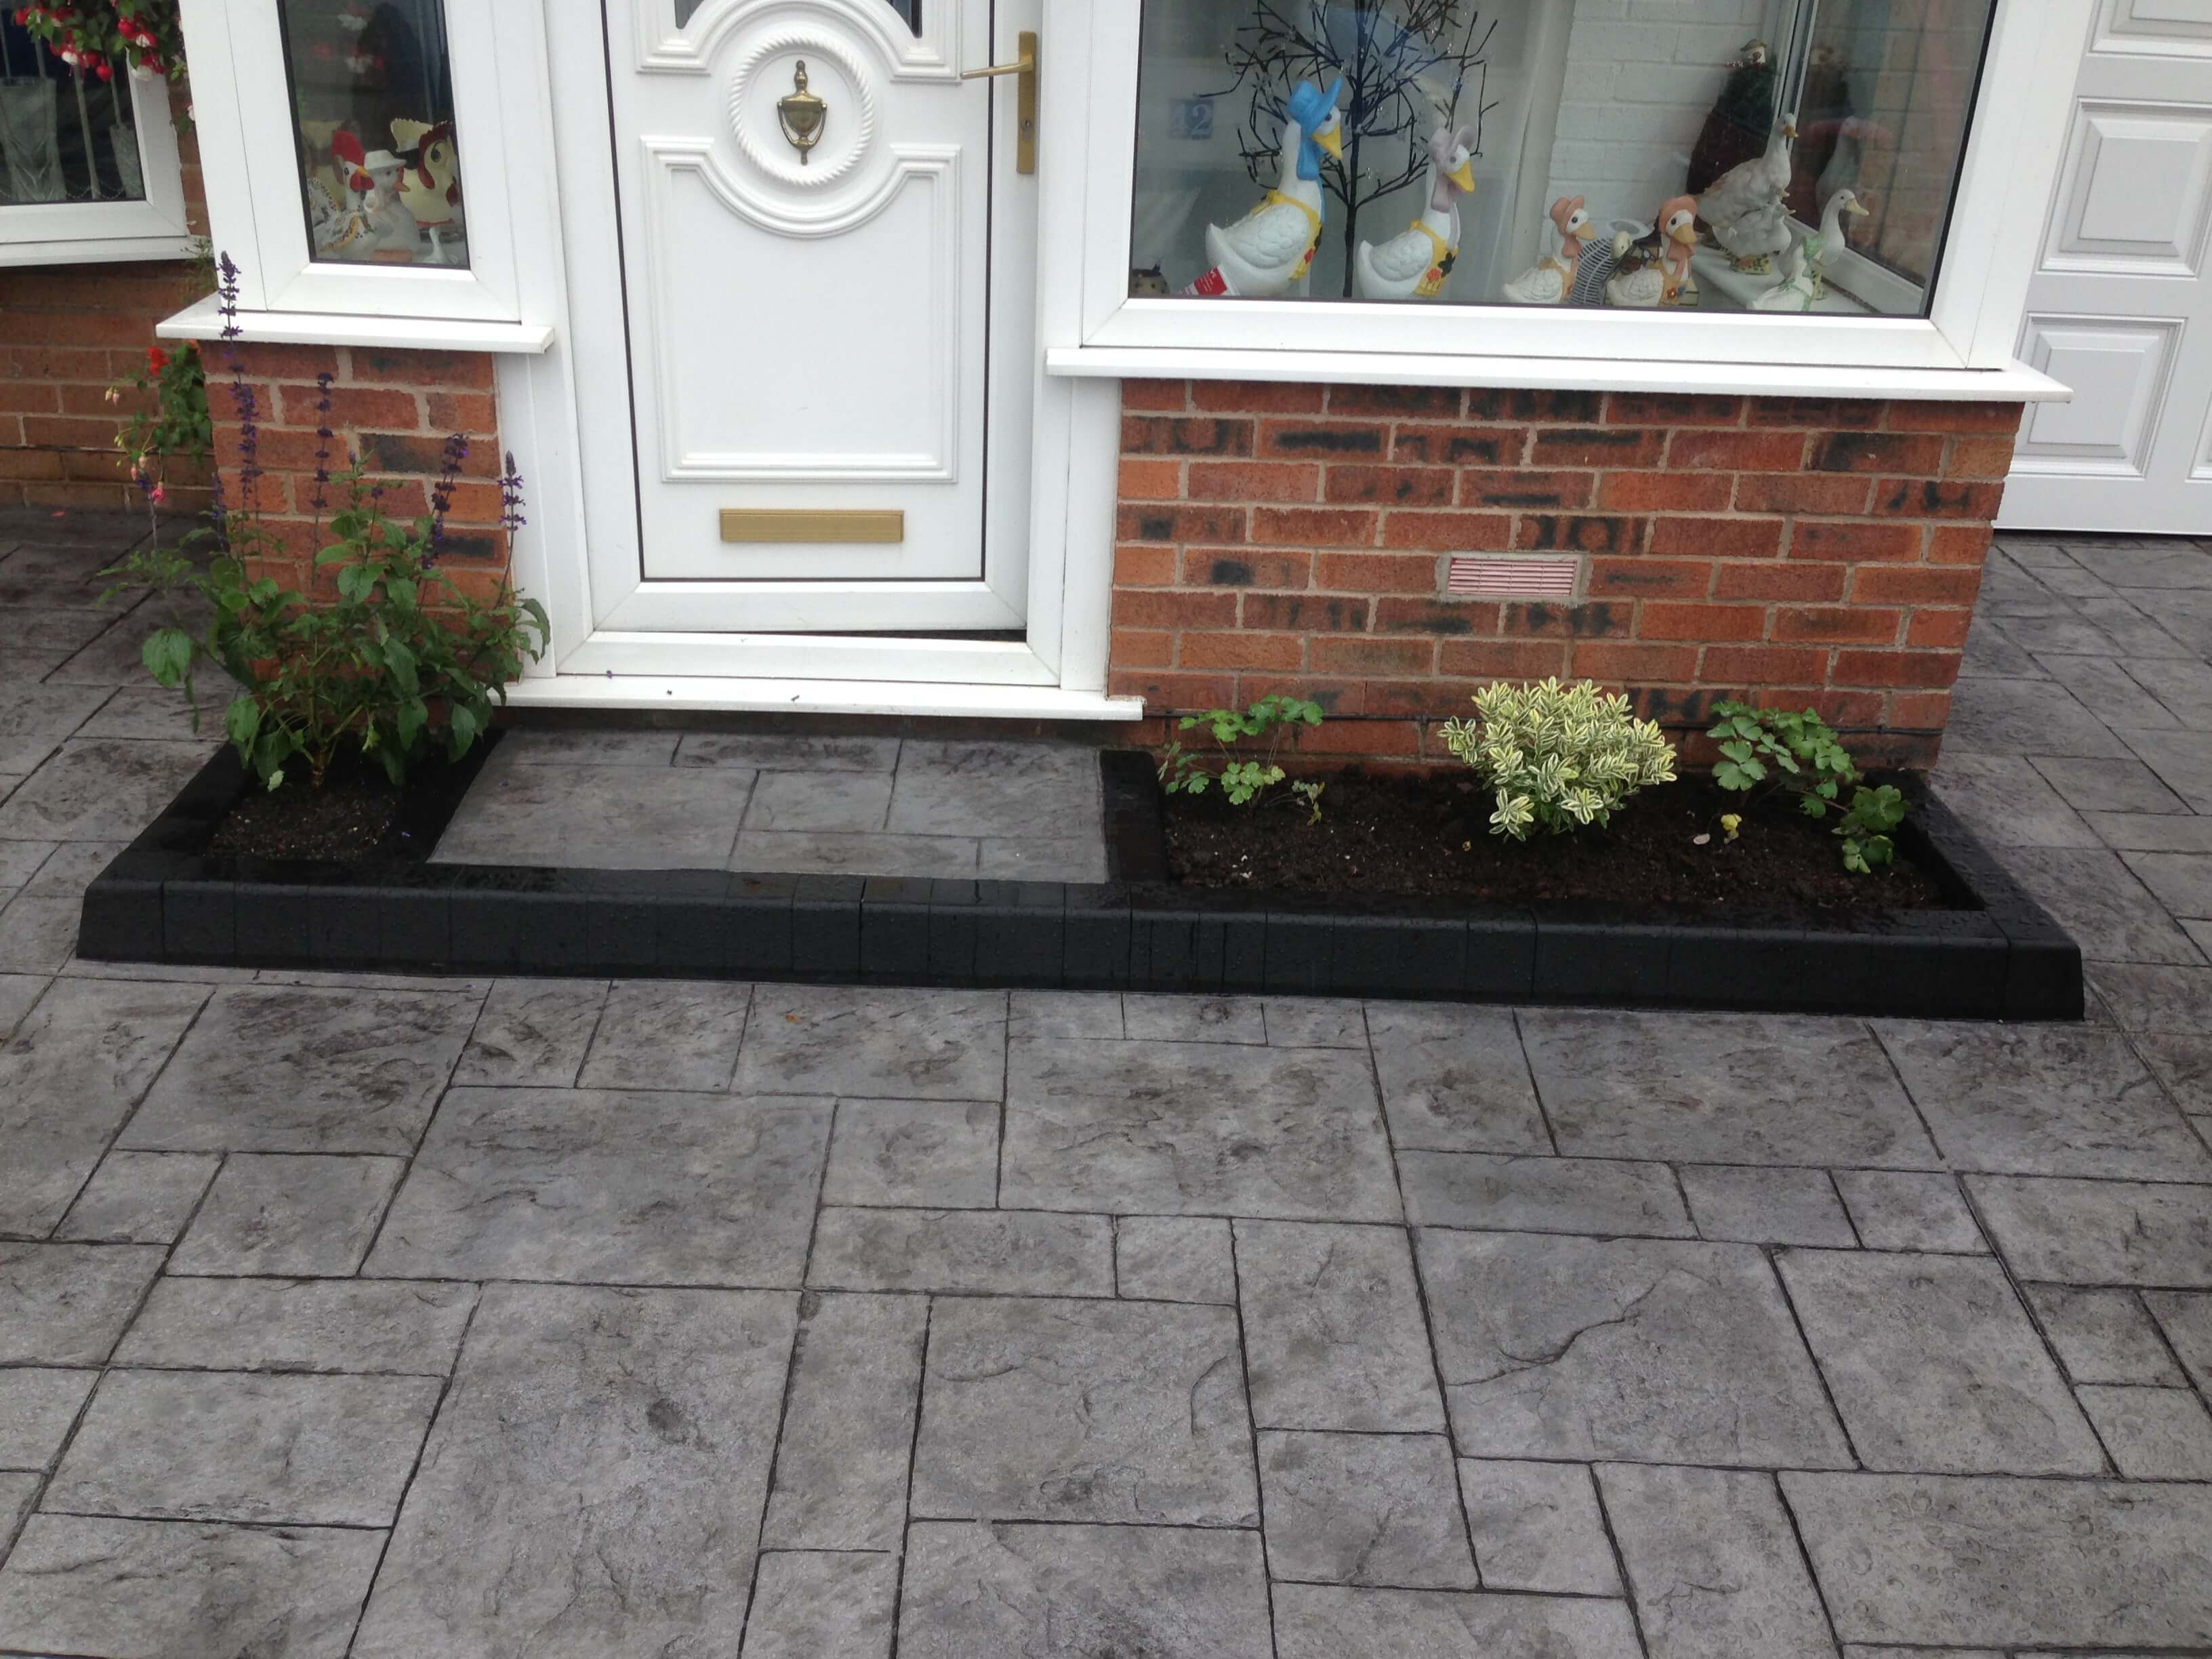 Driveway Ideas - Eample Image 2